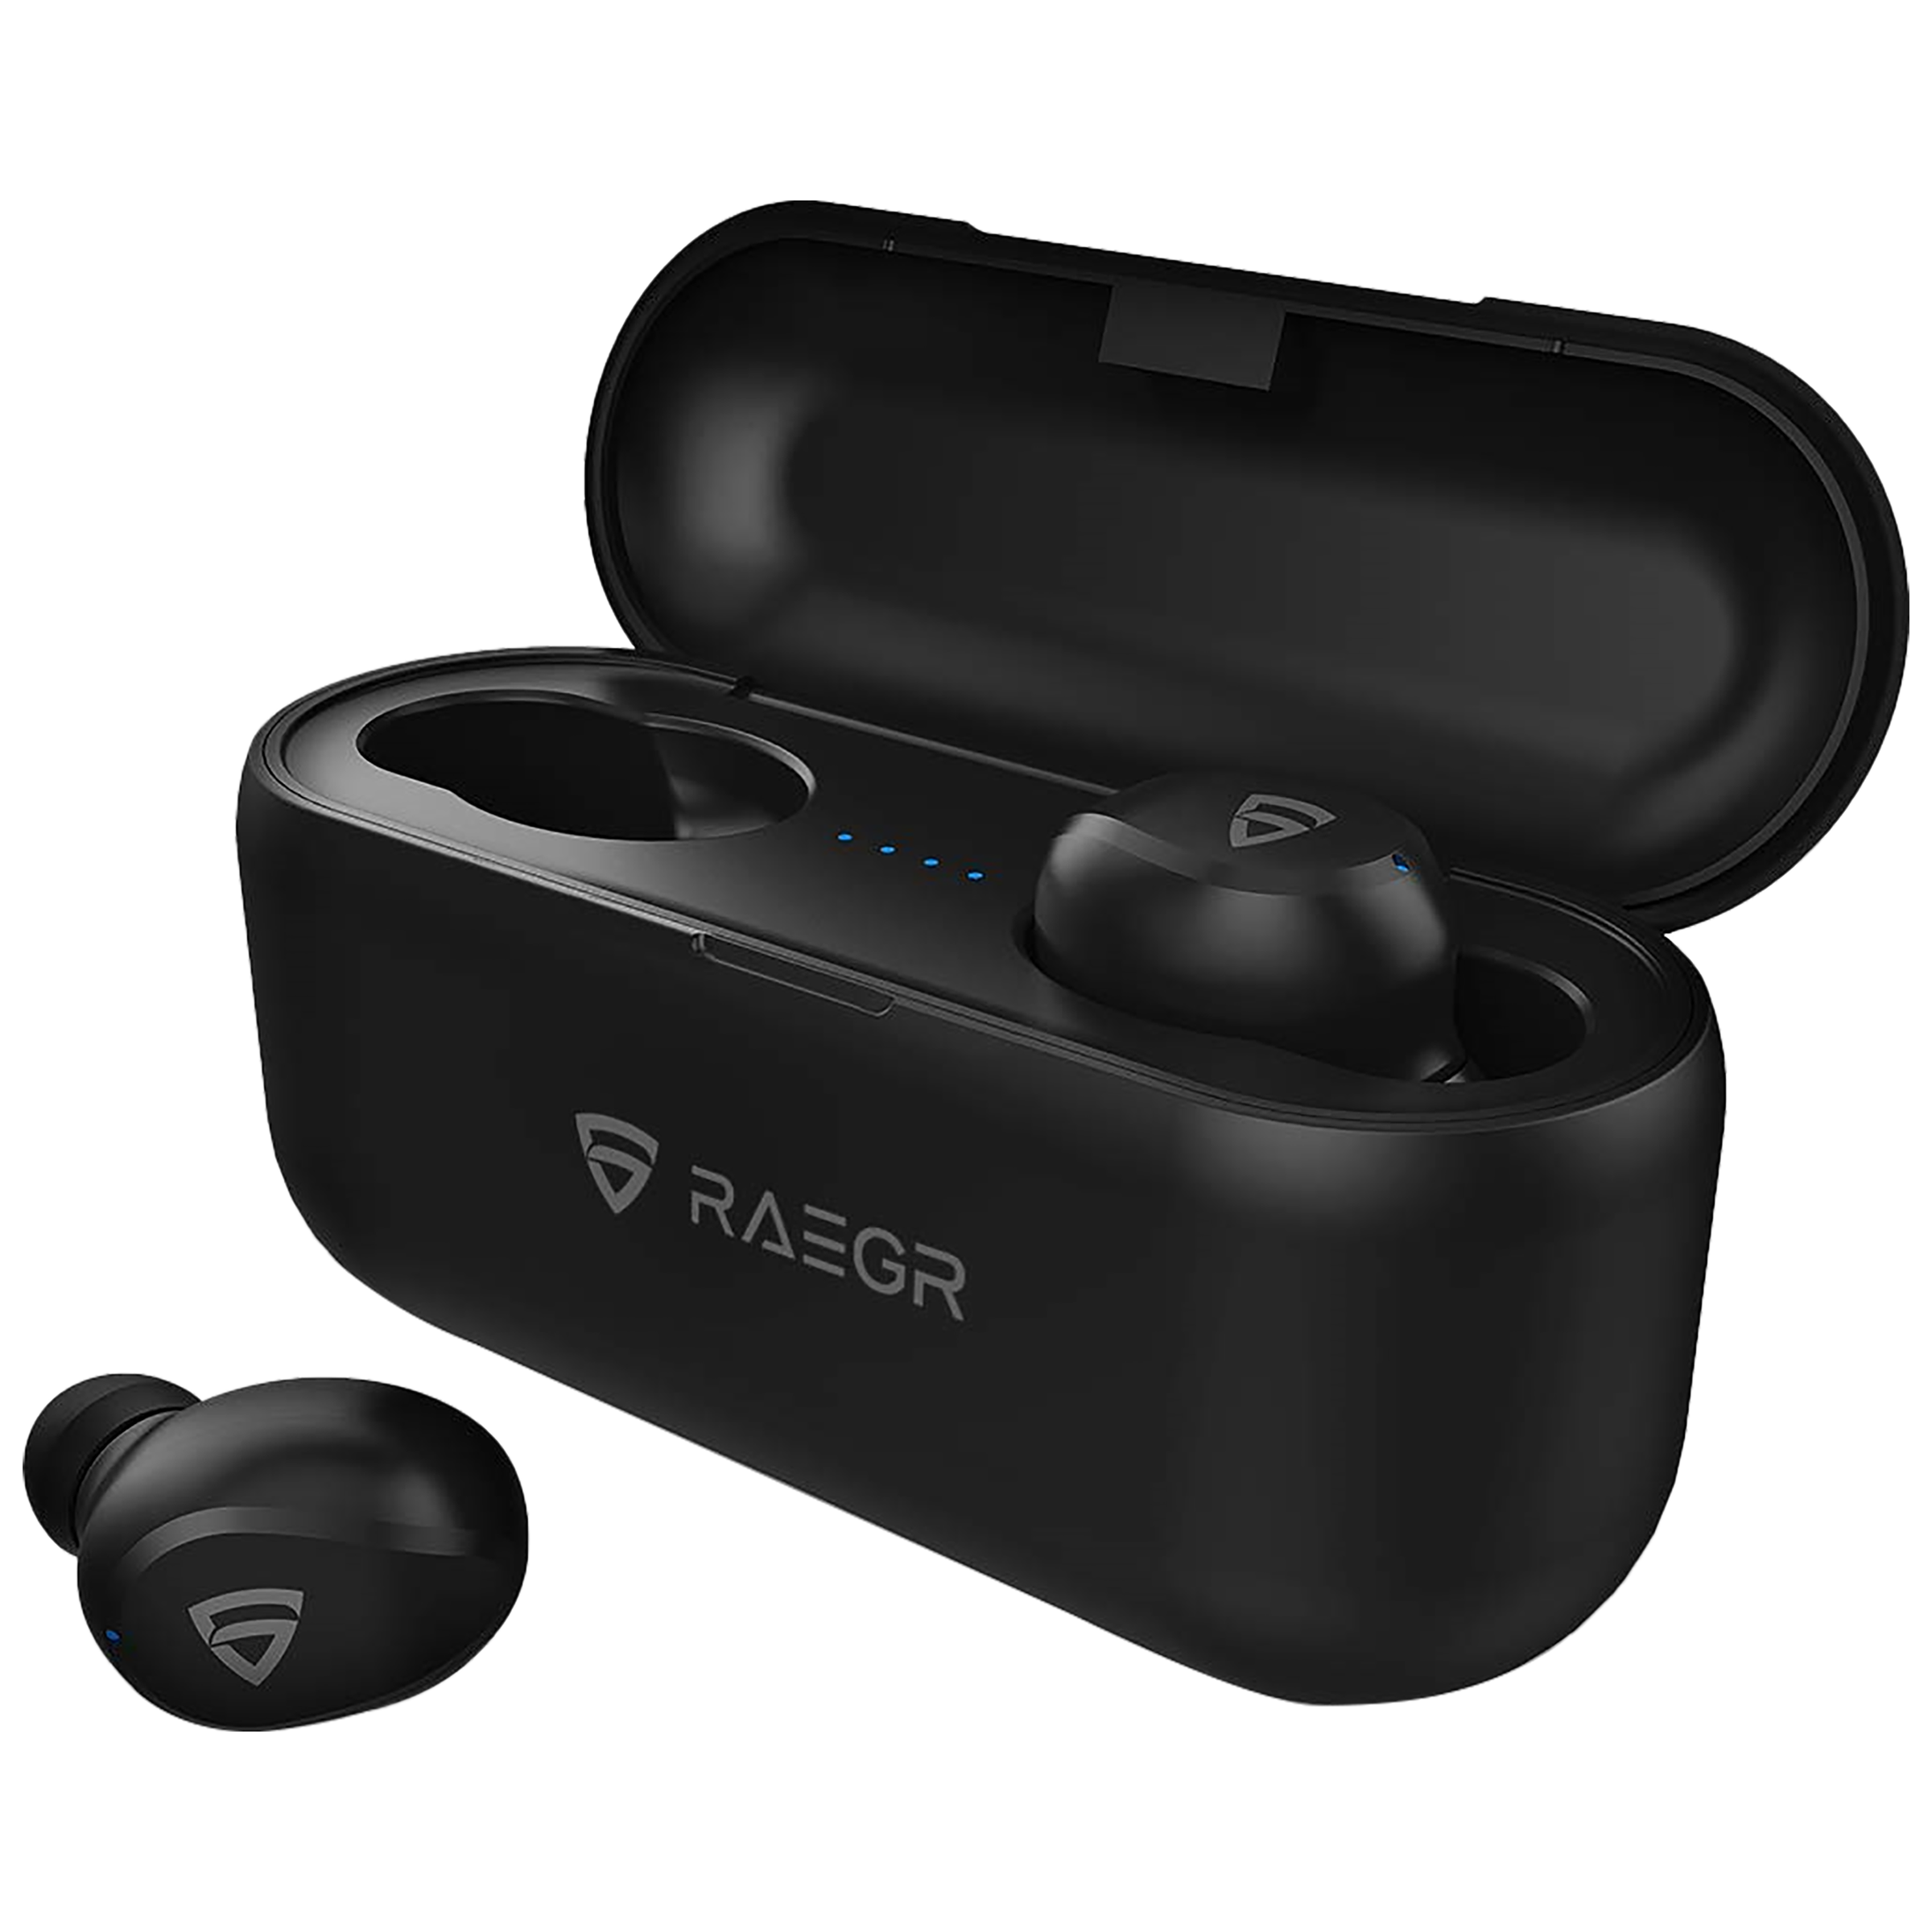 RAEGR AirShots 700 Plus In-Ear Active Noise Cancellation Truly Wireless Earbuds With Mic (Bluetooth 4.0, RG10065, Black)_1